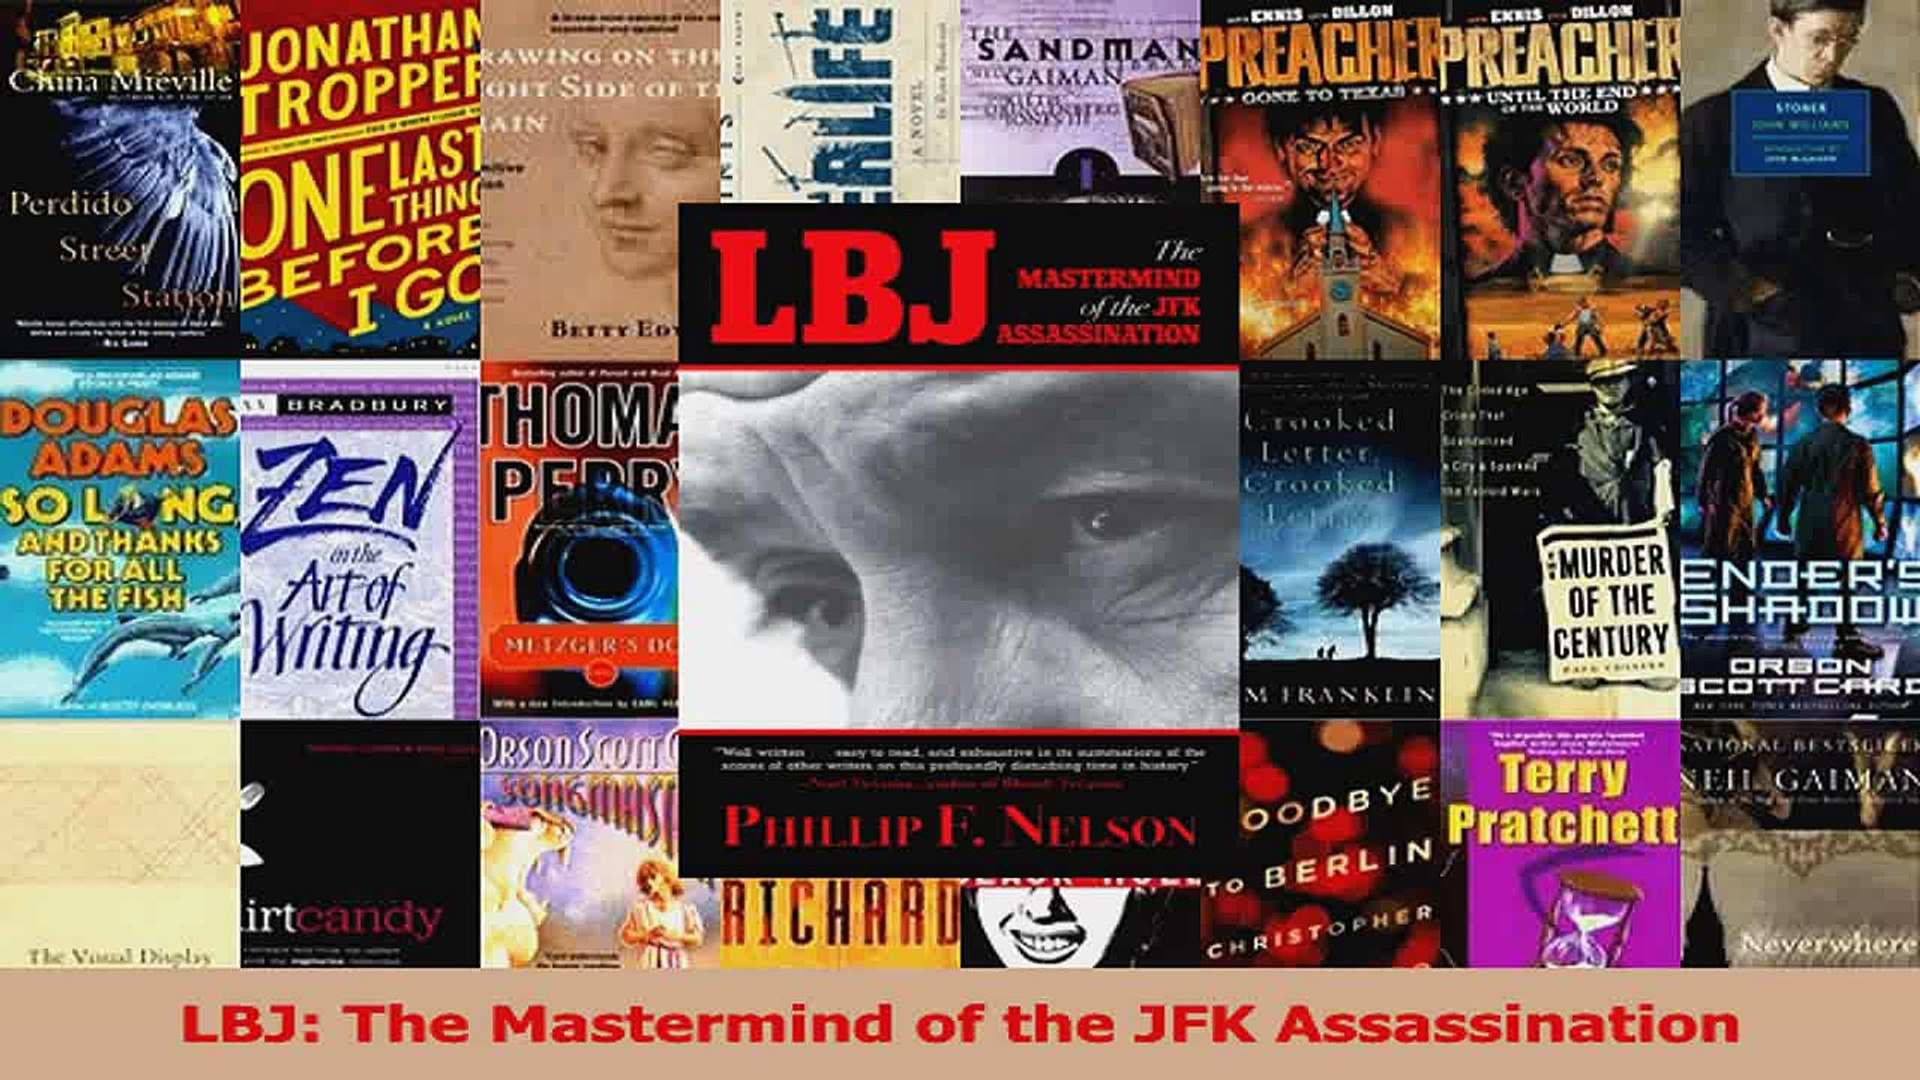 LBJ The Mastermind of the JFK Assassination